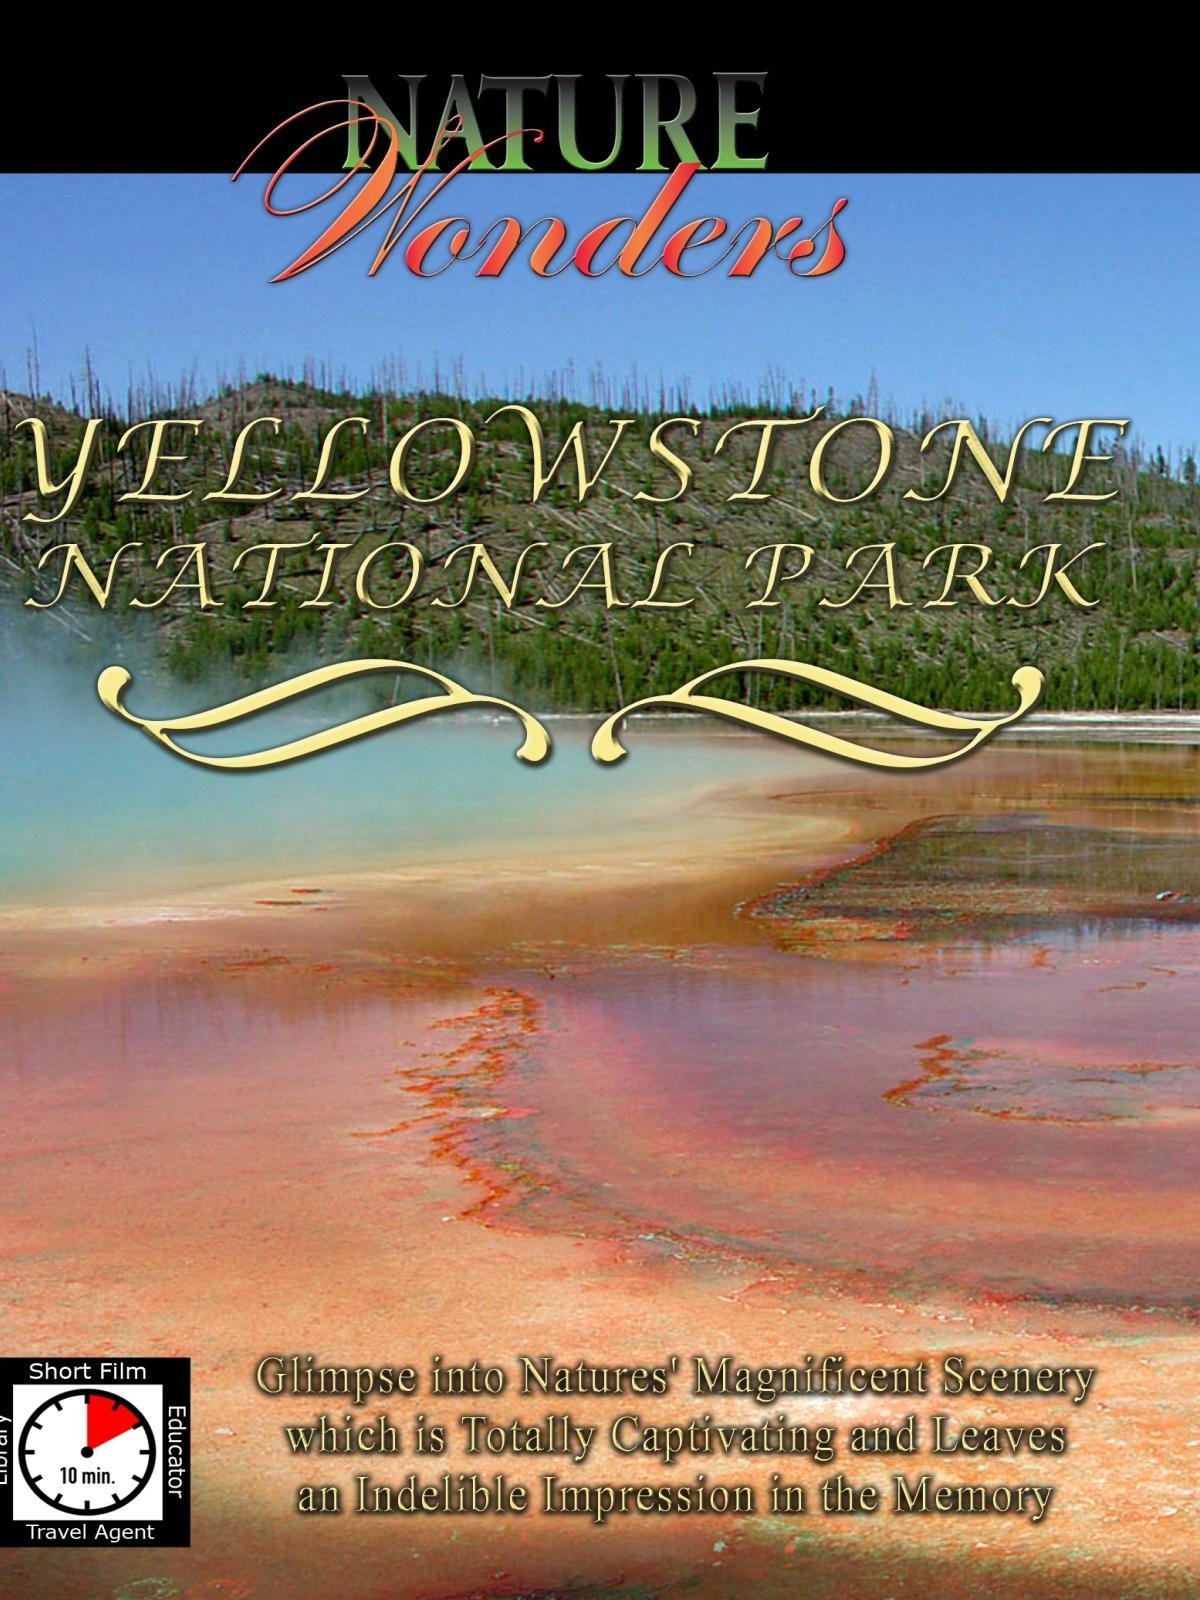 Nature Wonders - Yellowstone National Park - Wyoming - USA on Amazon Prime Instant Video UK